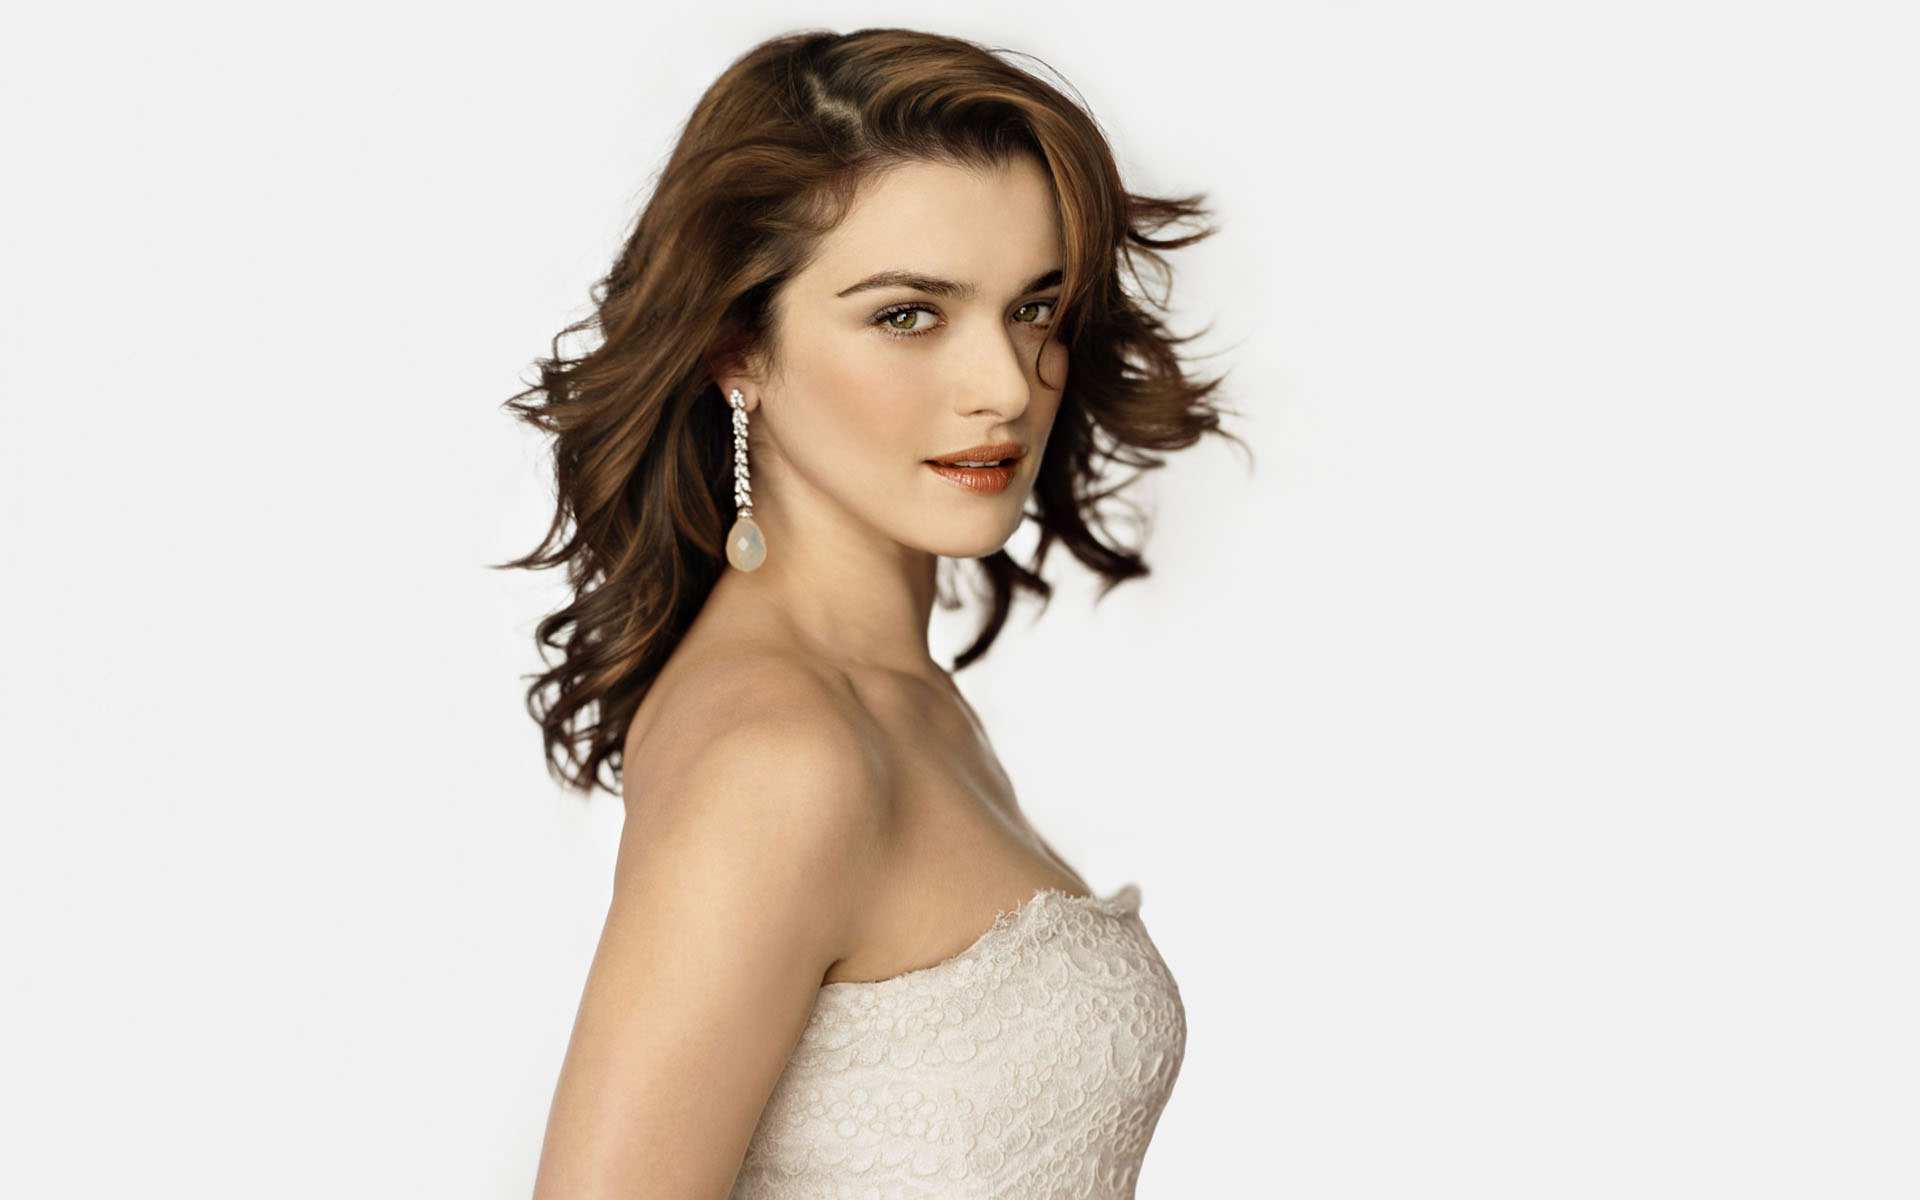 Adorable Hollywood Rachel Weisz Images Pictures HD wallpapers  UK 1920x1200